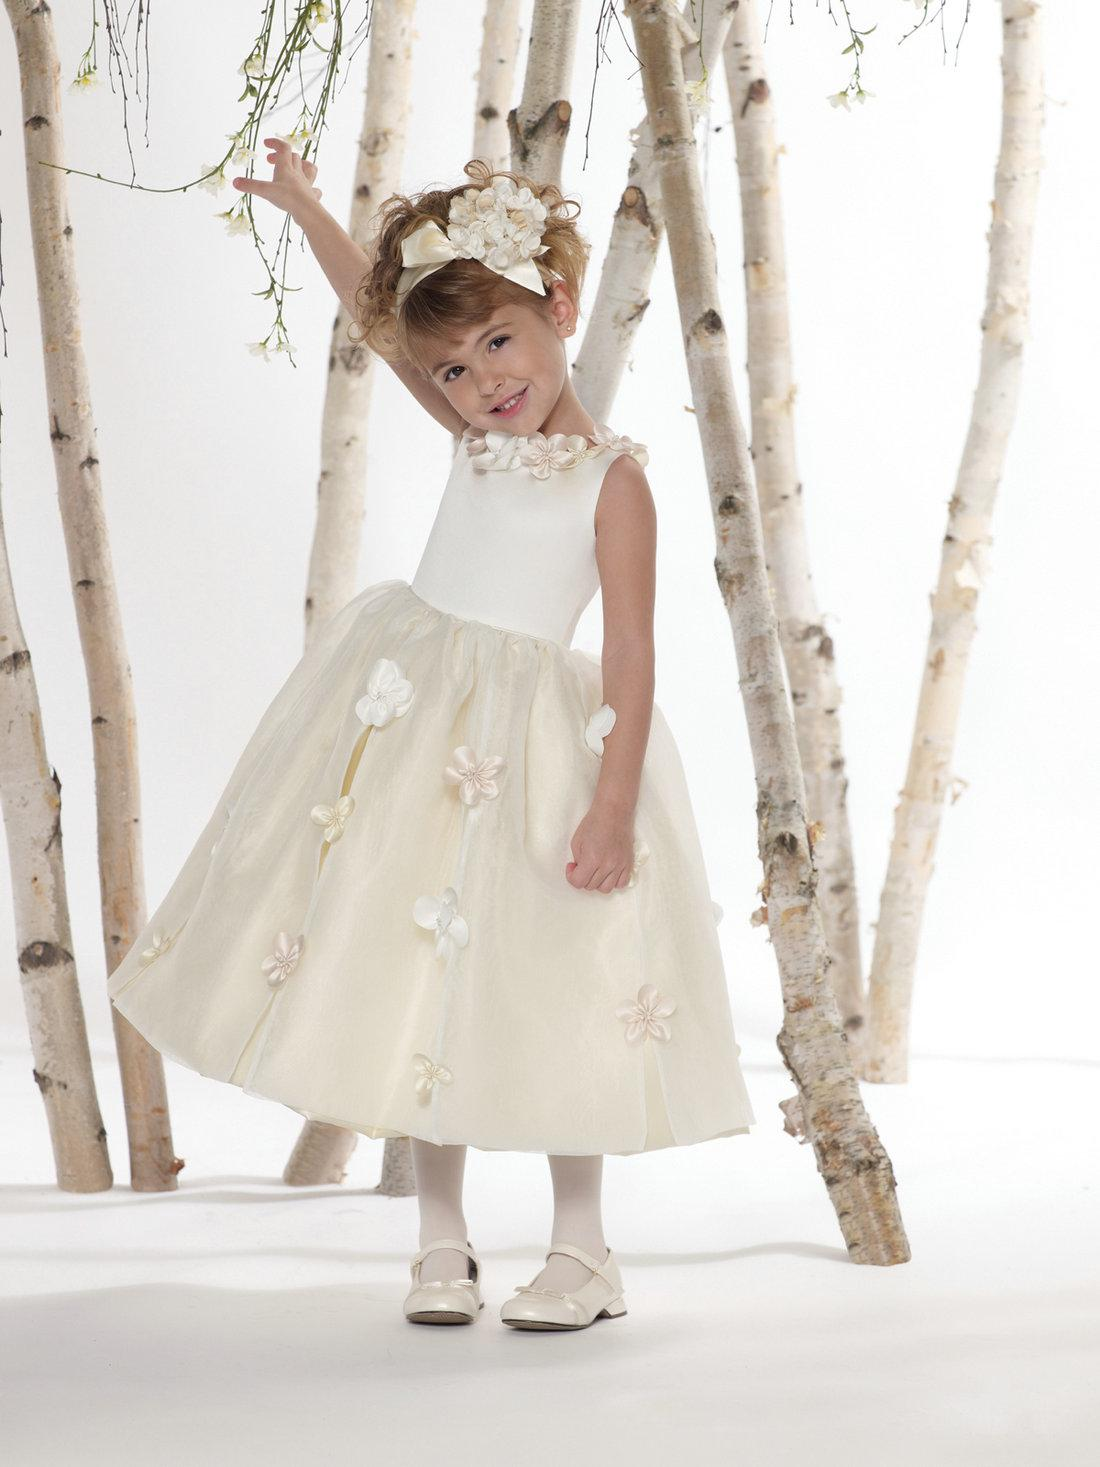 Cute flower girl dresses coupon code citroen c2 leasing deals we offer huge selection of flower girl dresses at cheap prices for your special occasions izmirmasajfo